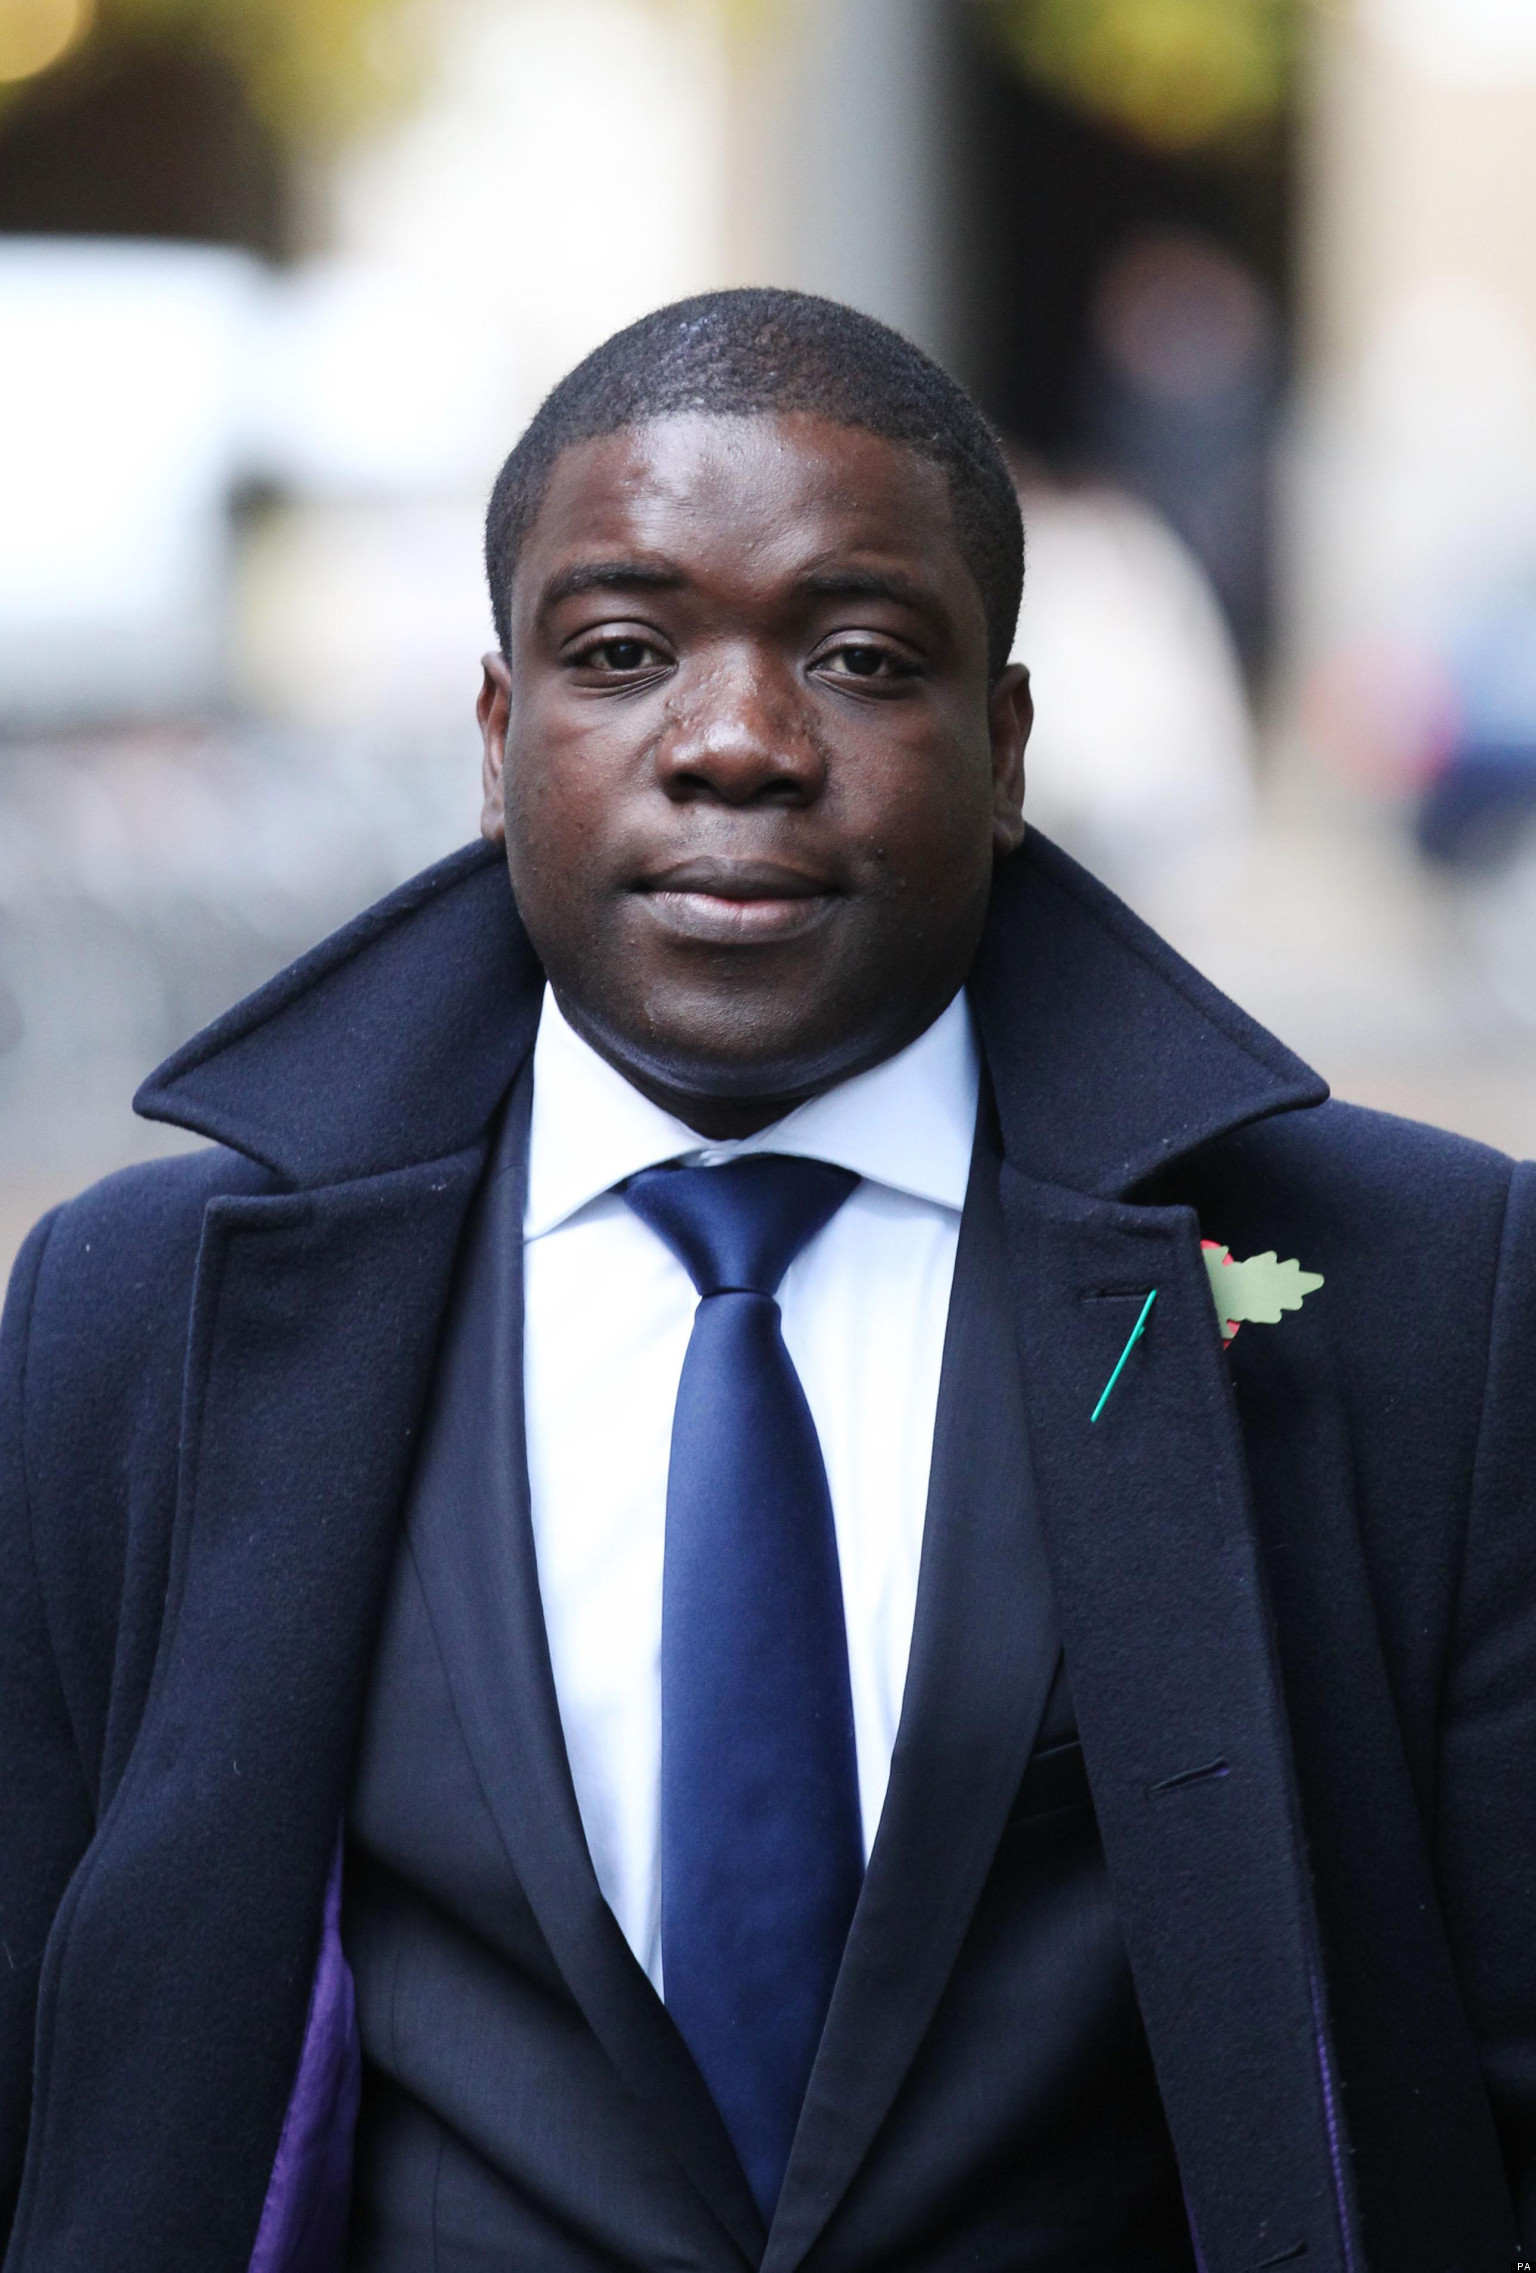 adoboli trades were queried by ubs Rogue trader kweku adoboli has hit back at suggestions he acted out of greed, correcting his critics by saying his actions were motivated by wanting to.